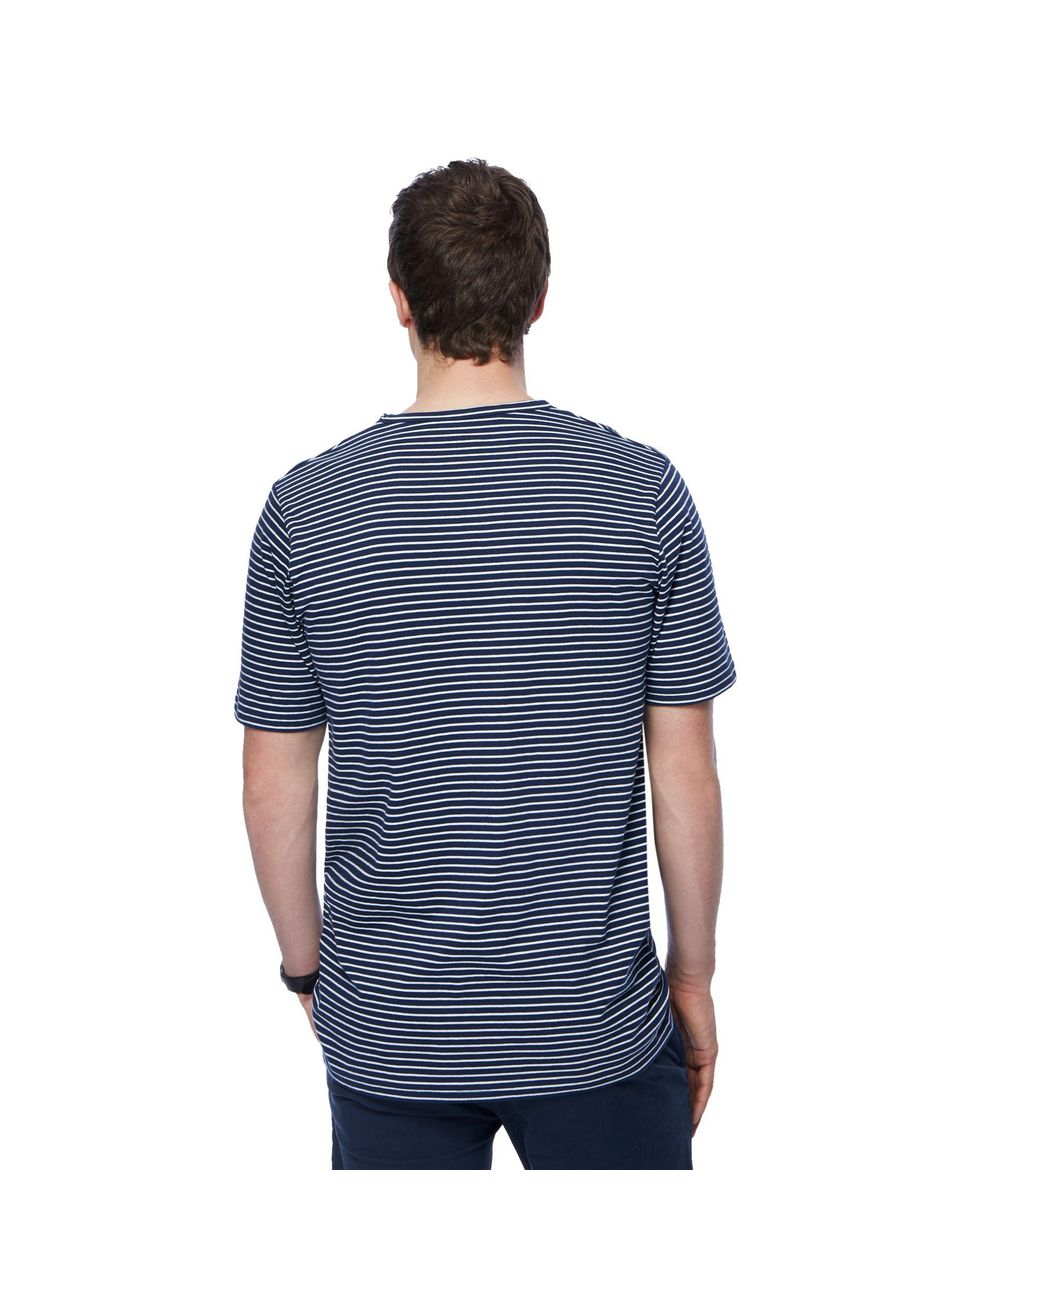 9dc6b235 Jacamo Big And Tall Navy Striped T-shirt in Blue for Men - Lyst